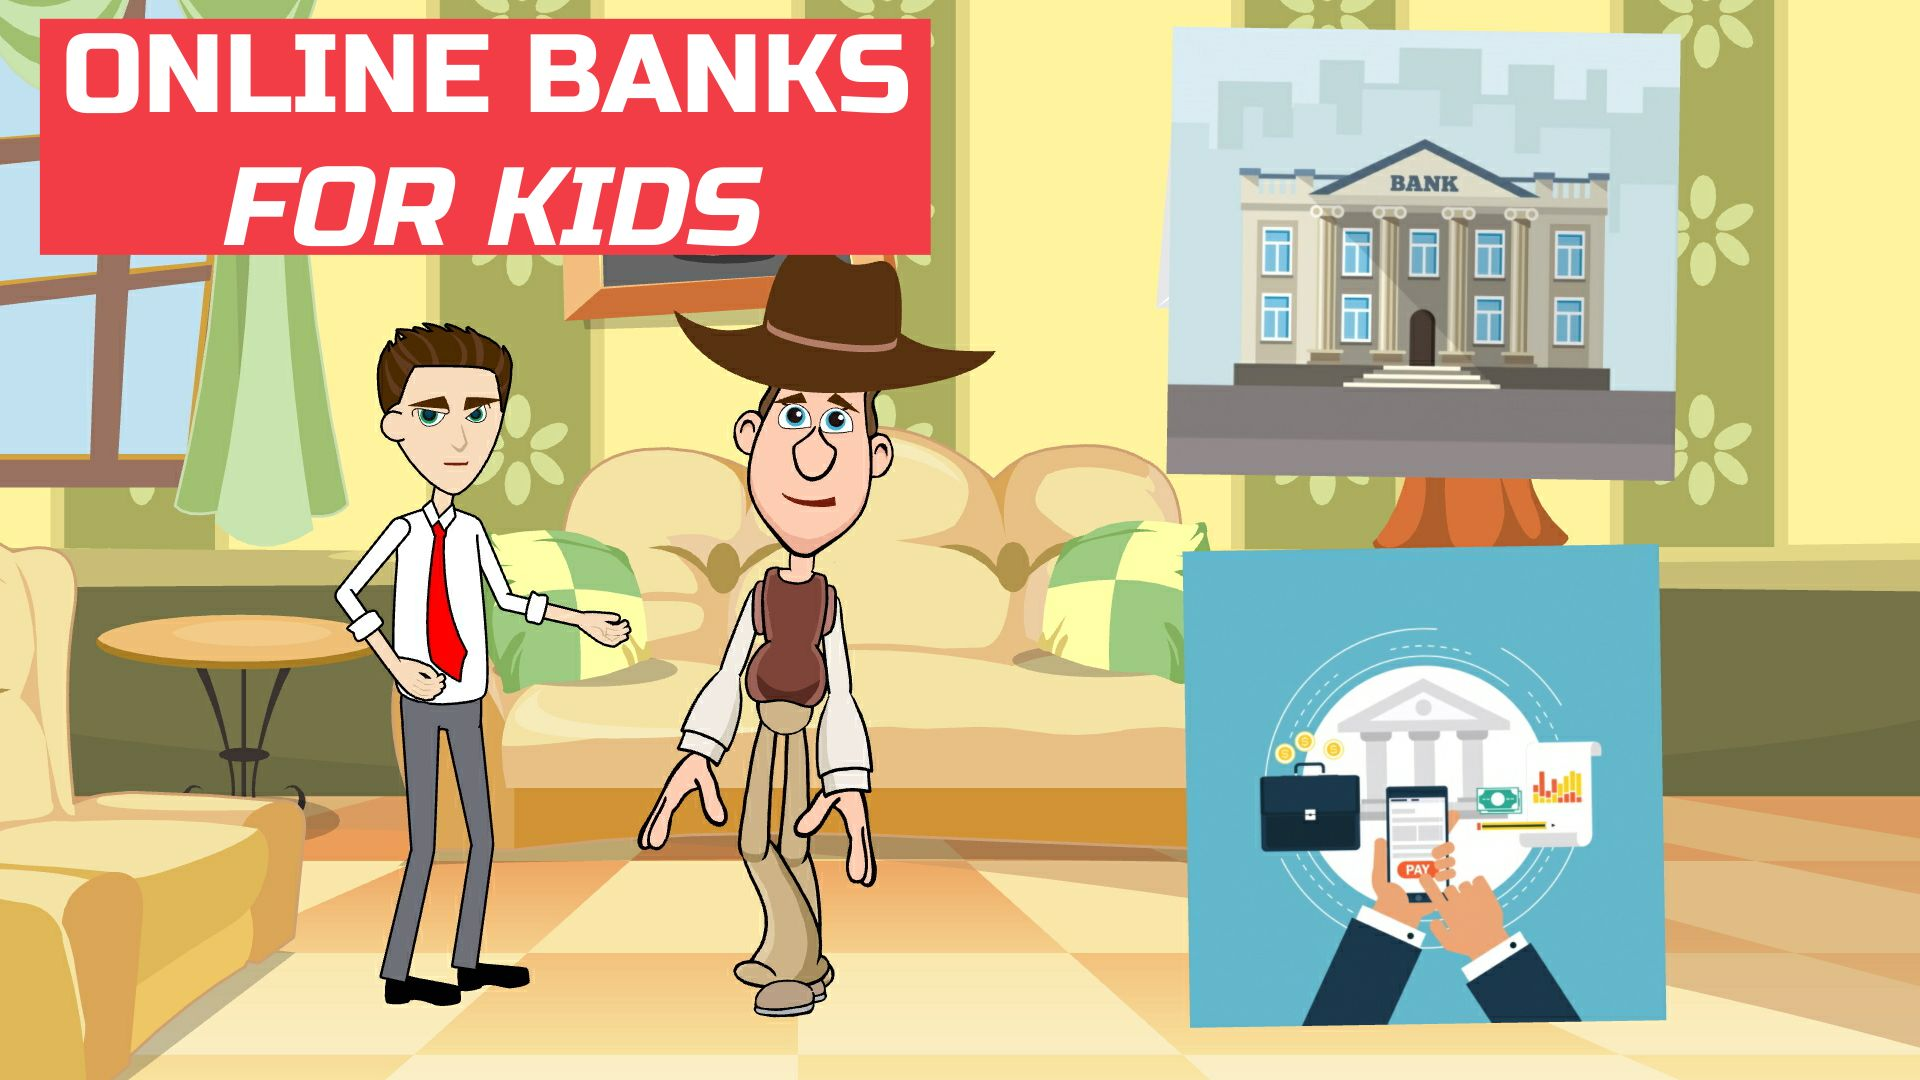 Online Only Banks - Internet Based Banks - Online Banks